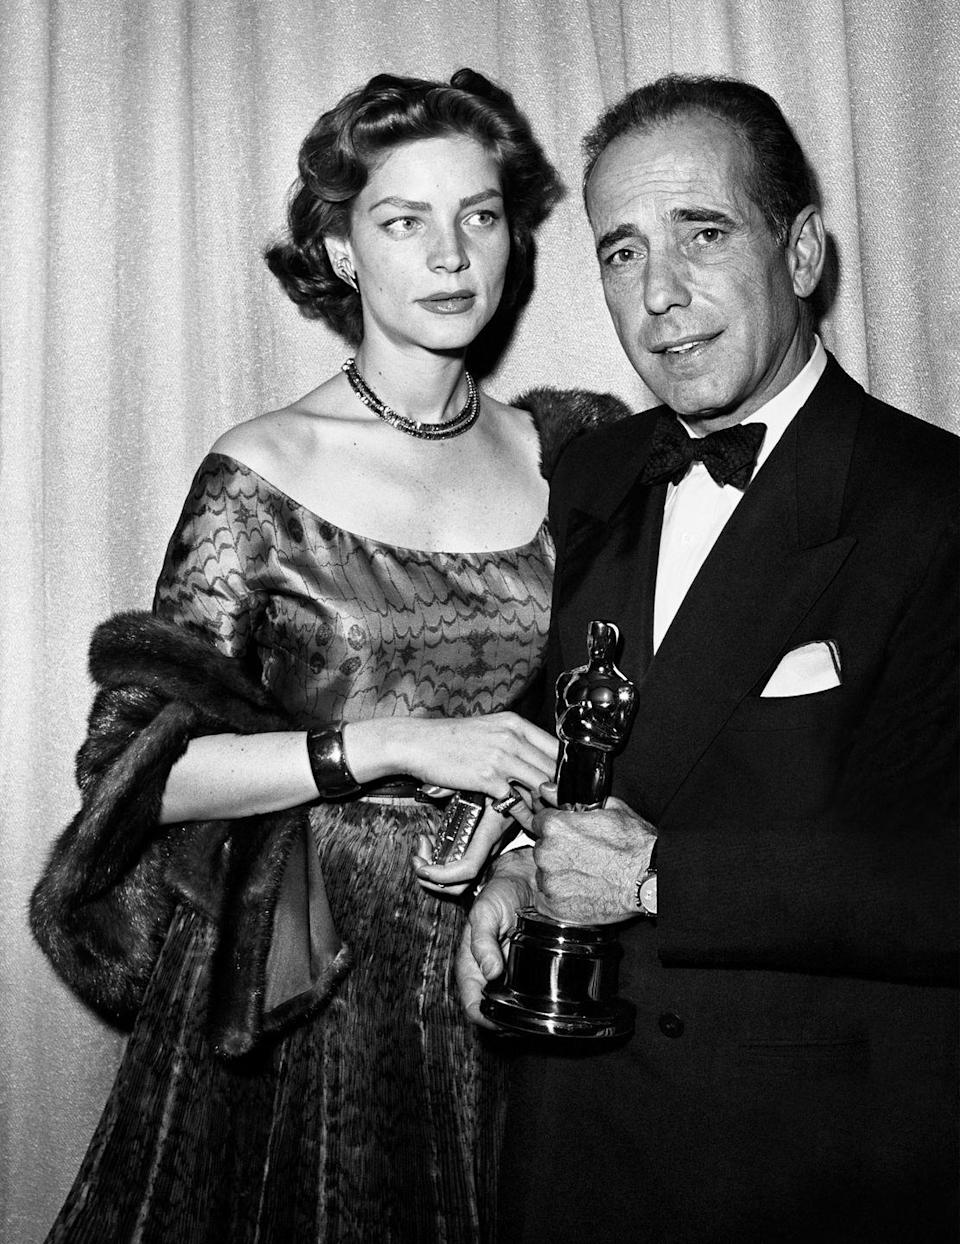 "<p>Humphrey Bogart and wife <a href=""https://www.goodhousekeeping.com/home/a27273/lauren-bacall-antique-home/"" rel=""nofollow noopener"" target=""_blank"" data-ylk=""slk:Lauren Bacall"" class=""link rapid-noclick-resp"">Lauren Bacall</a> arrived in style to the ceremony at Hollywood's Pantages Theater, where Bogart won Best Actor for <em><a href=""https://www.amazon.com/dp/B003F3ITNE?ref=sr_1_1_acs_kn_imdb_pa_dp&qid=1547577874&sr=1-1-acs&autoplay=0&tag=syn-yahoo-20&ascsubtag=%5Bartid%7C10055.g.5132%5Bsrc%7Cyahoo-us"" rel=""nofollow noopener"" target=""_blank"" data-ylk=""slk:The African Queen"" class=""link rapid-noclick-resp"">The African Queen</a></em>.</p>"